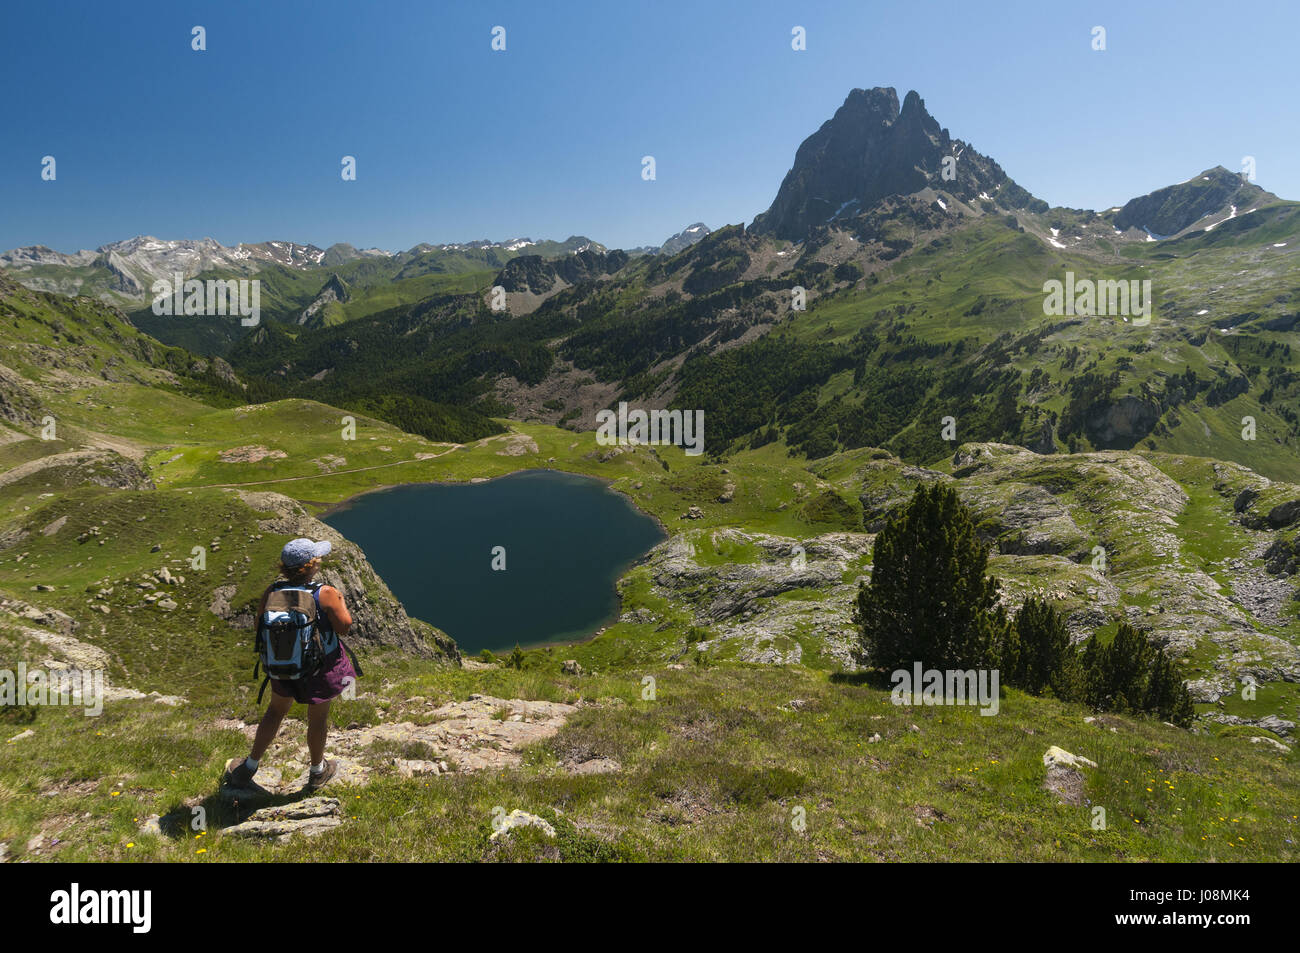 France, Pyrenees, Lacs d'Ayous lakes, Lake Roumassot with Pic du Midi d'Ossau and hiker - Stock Image